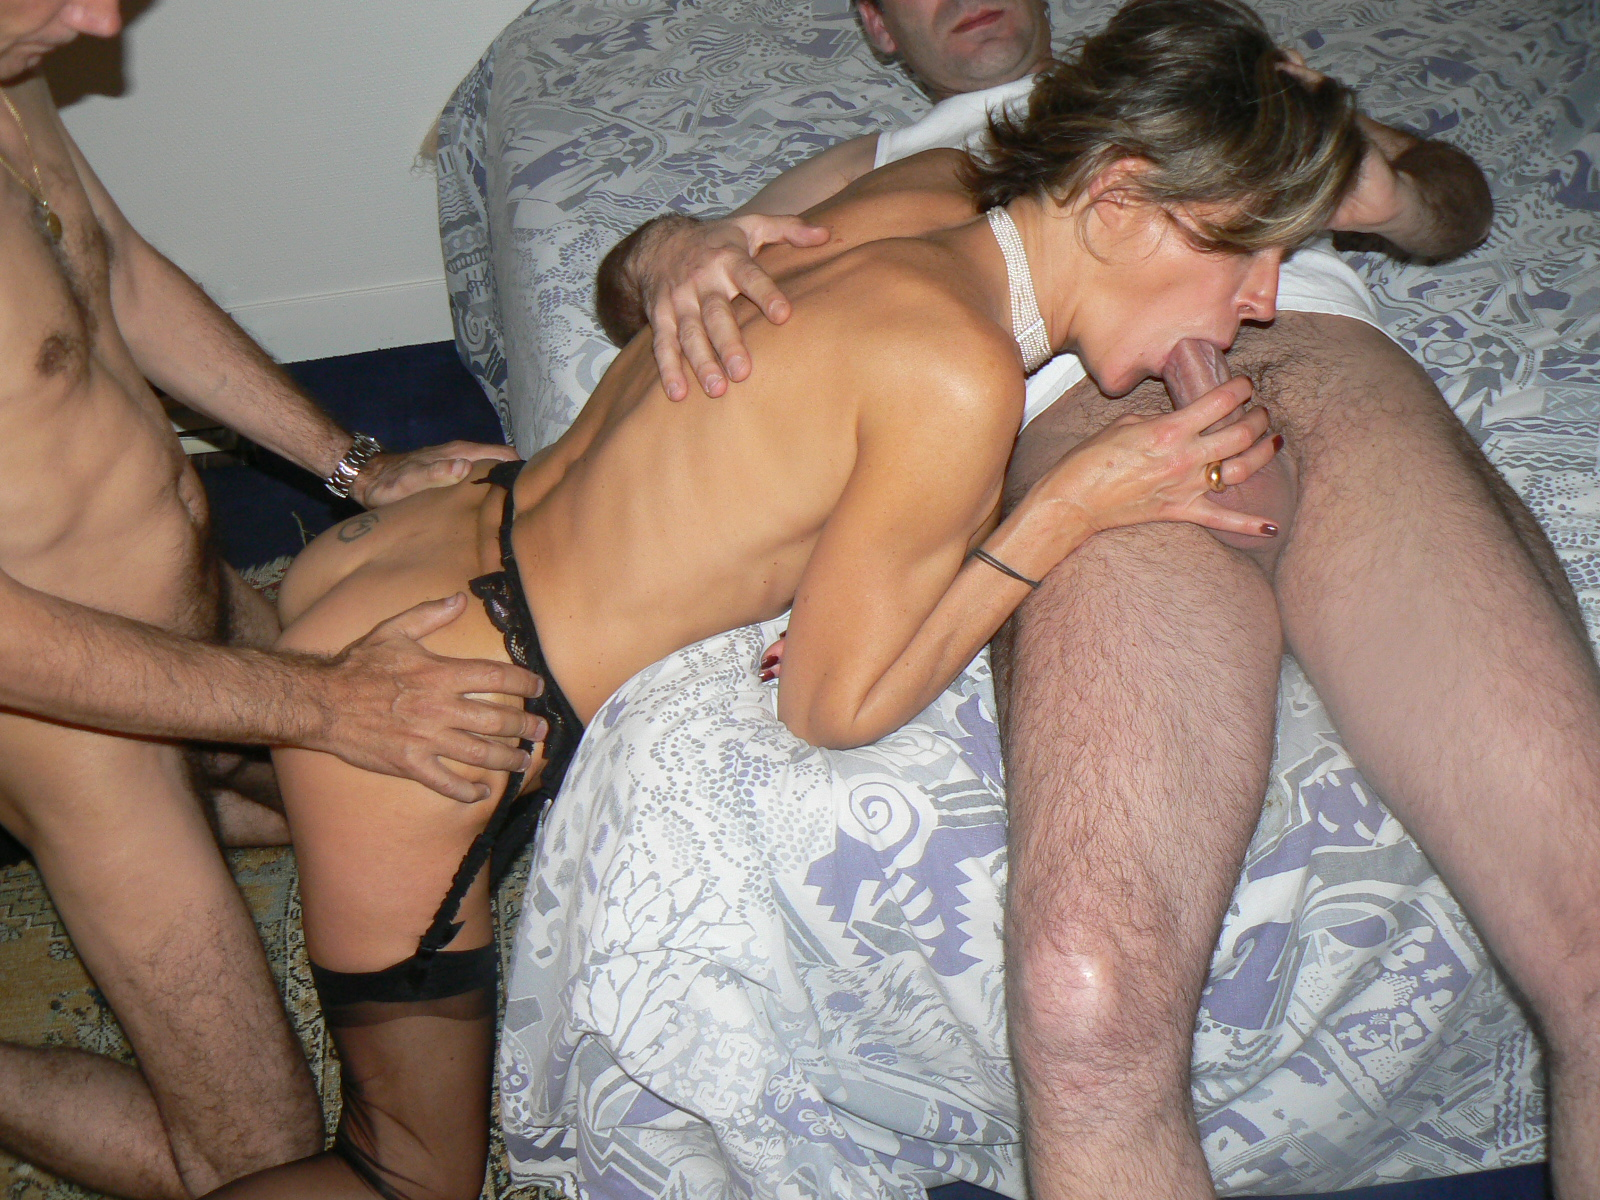 Threesome swinger picture gallery — photo 15